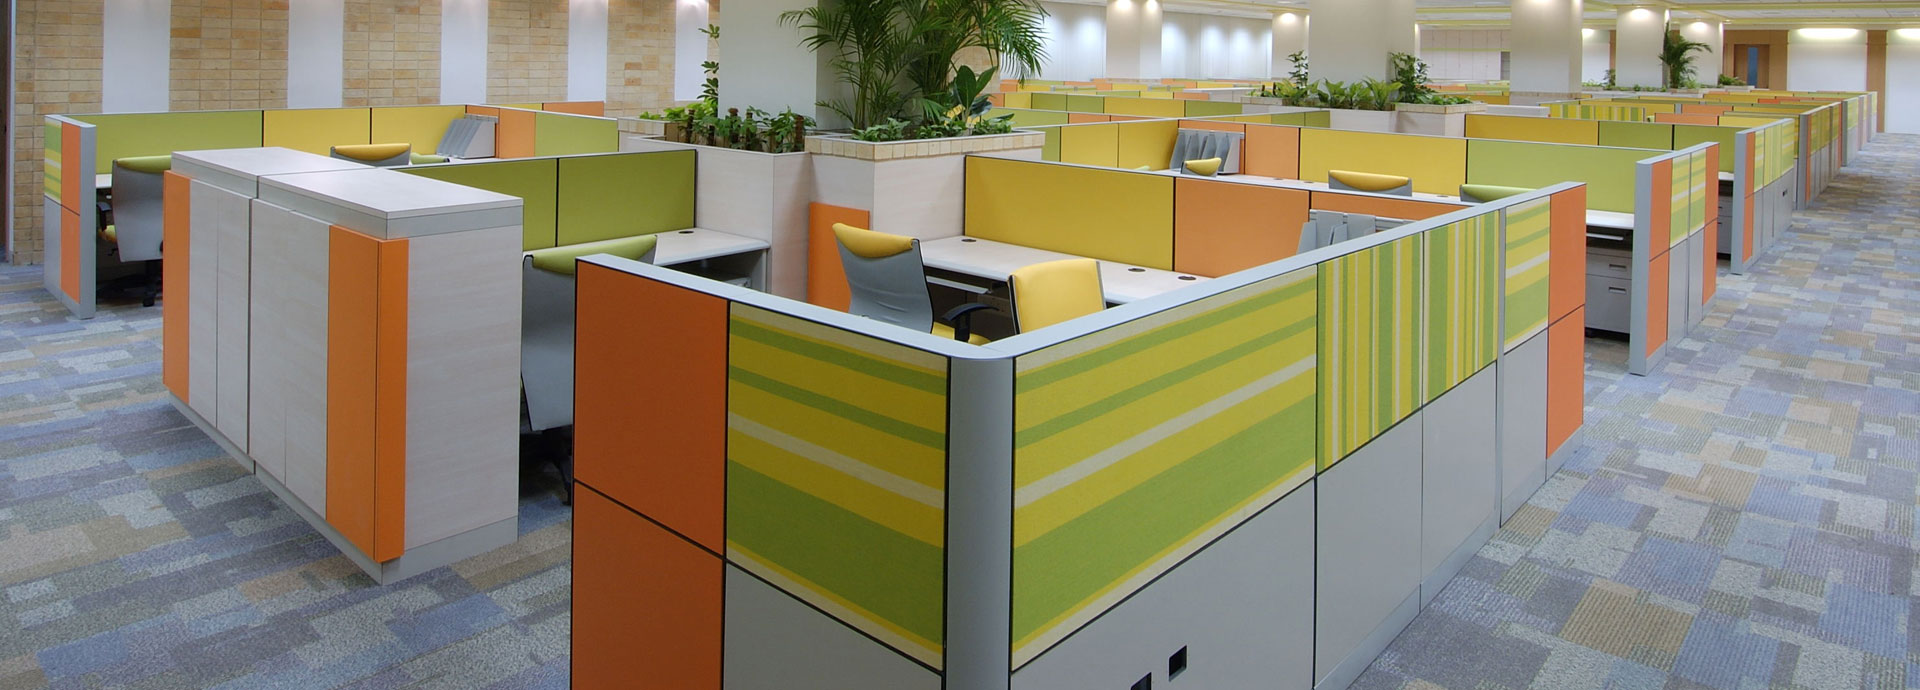 Prime Office Systems  Office Furniture in Chennai